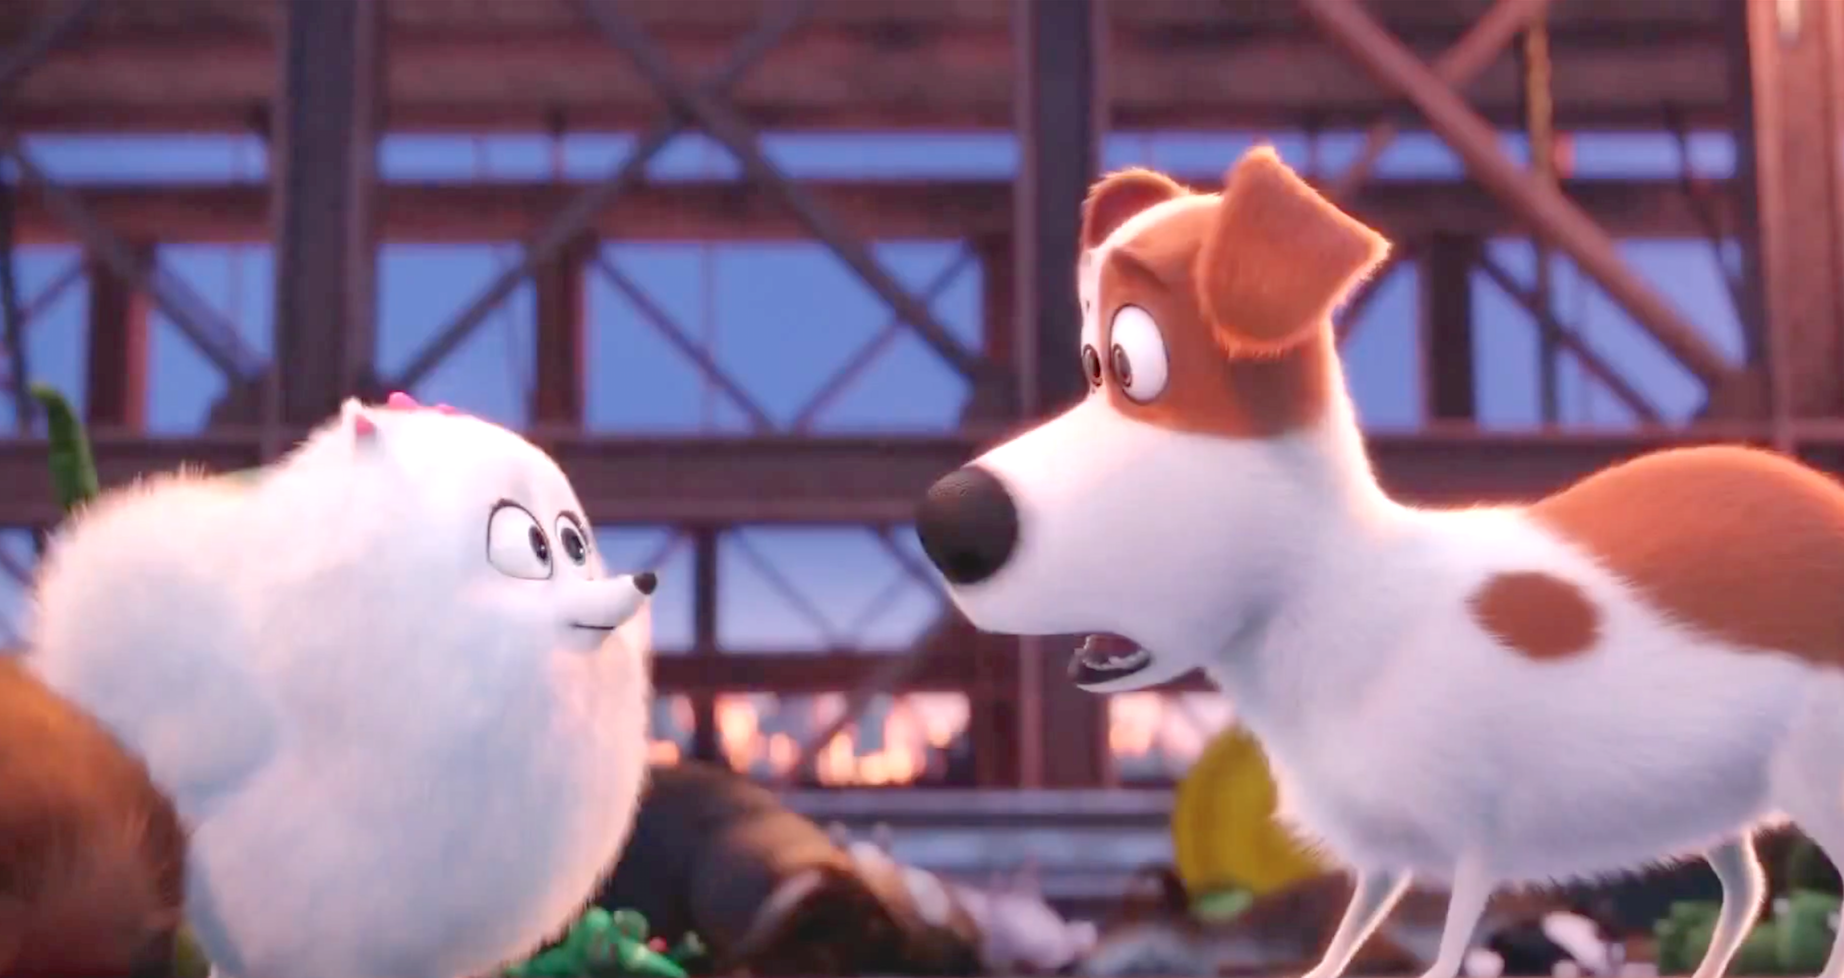 The Secret Life Of Pets (2016), Gidget (Jenny Slate), Max (Louis C.K.)